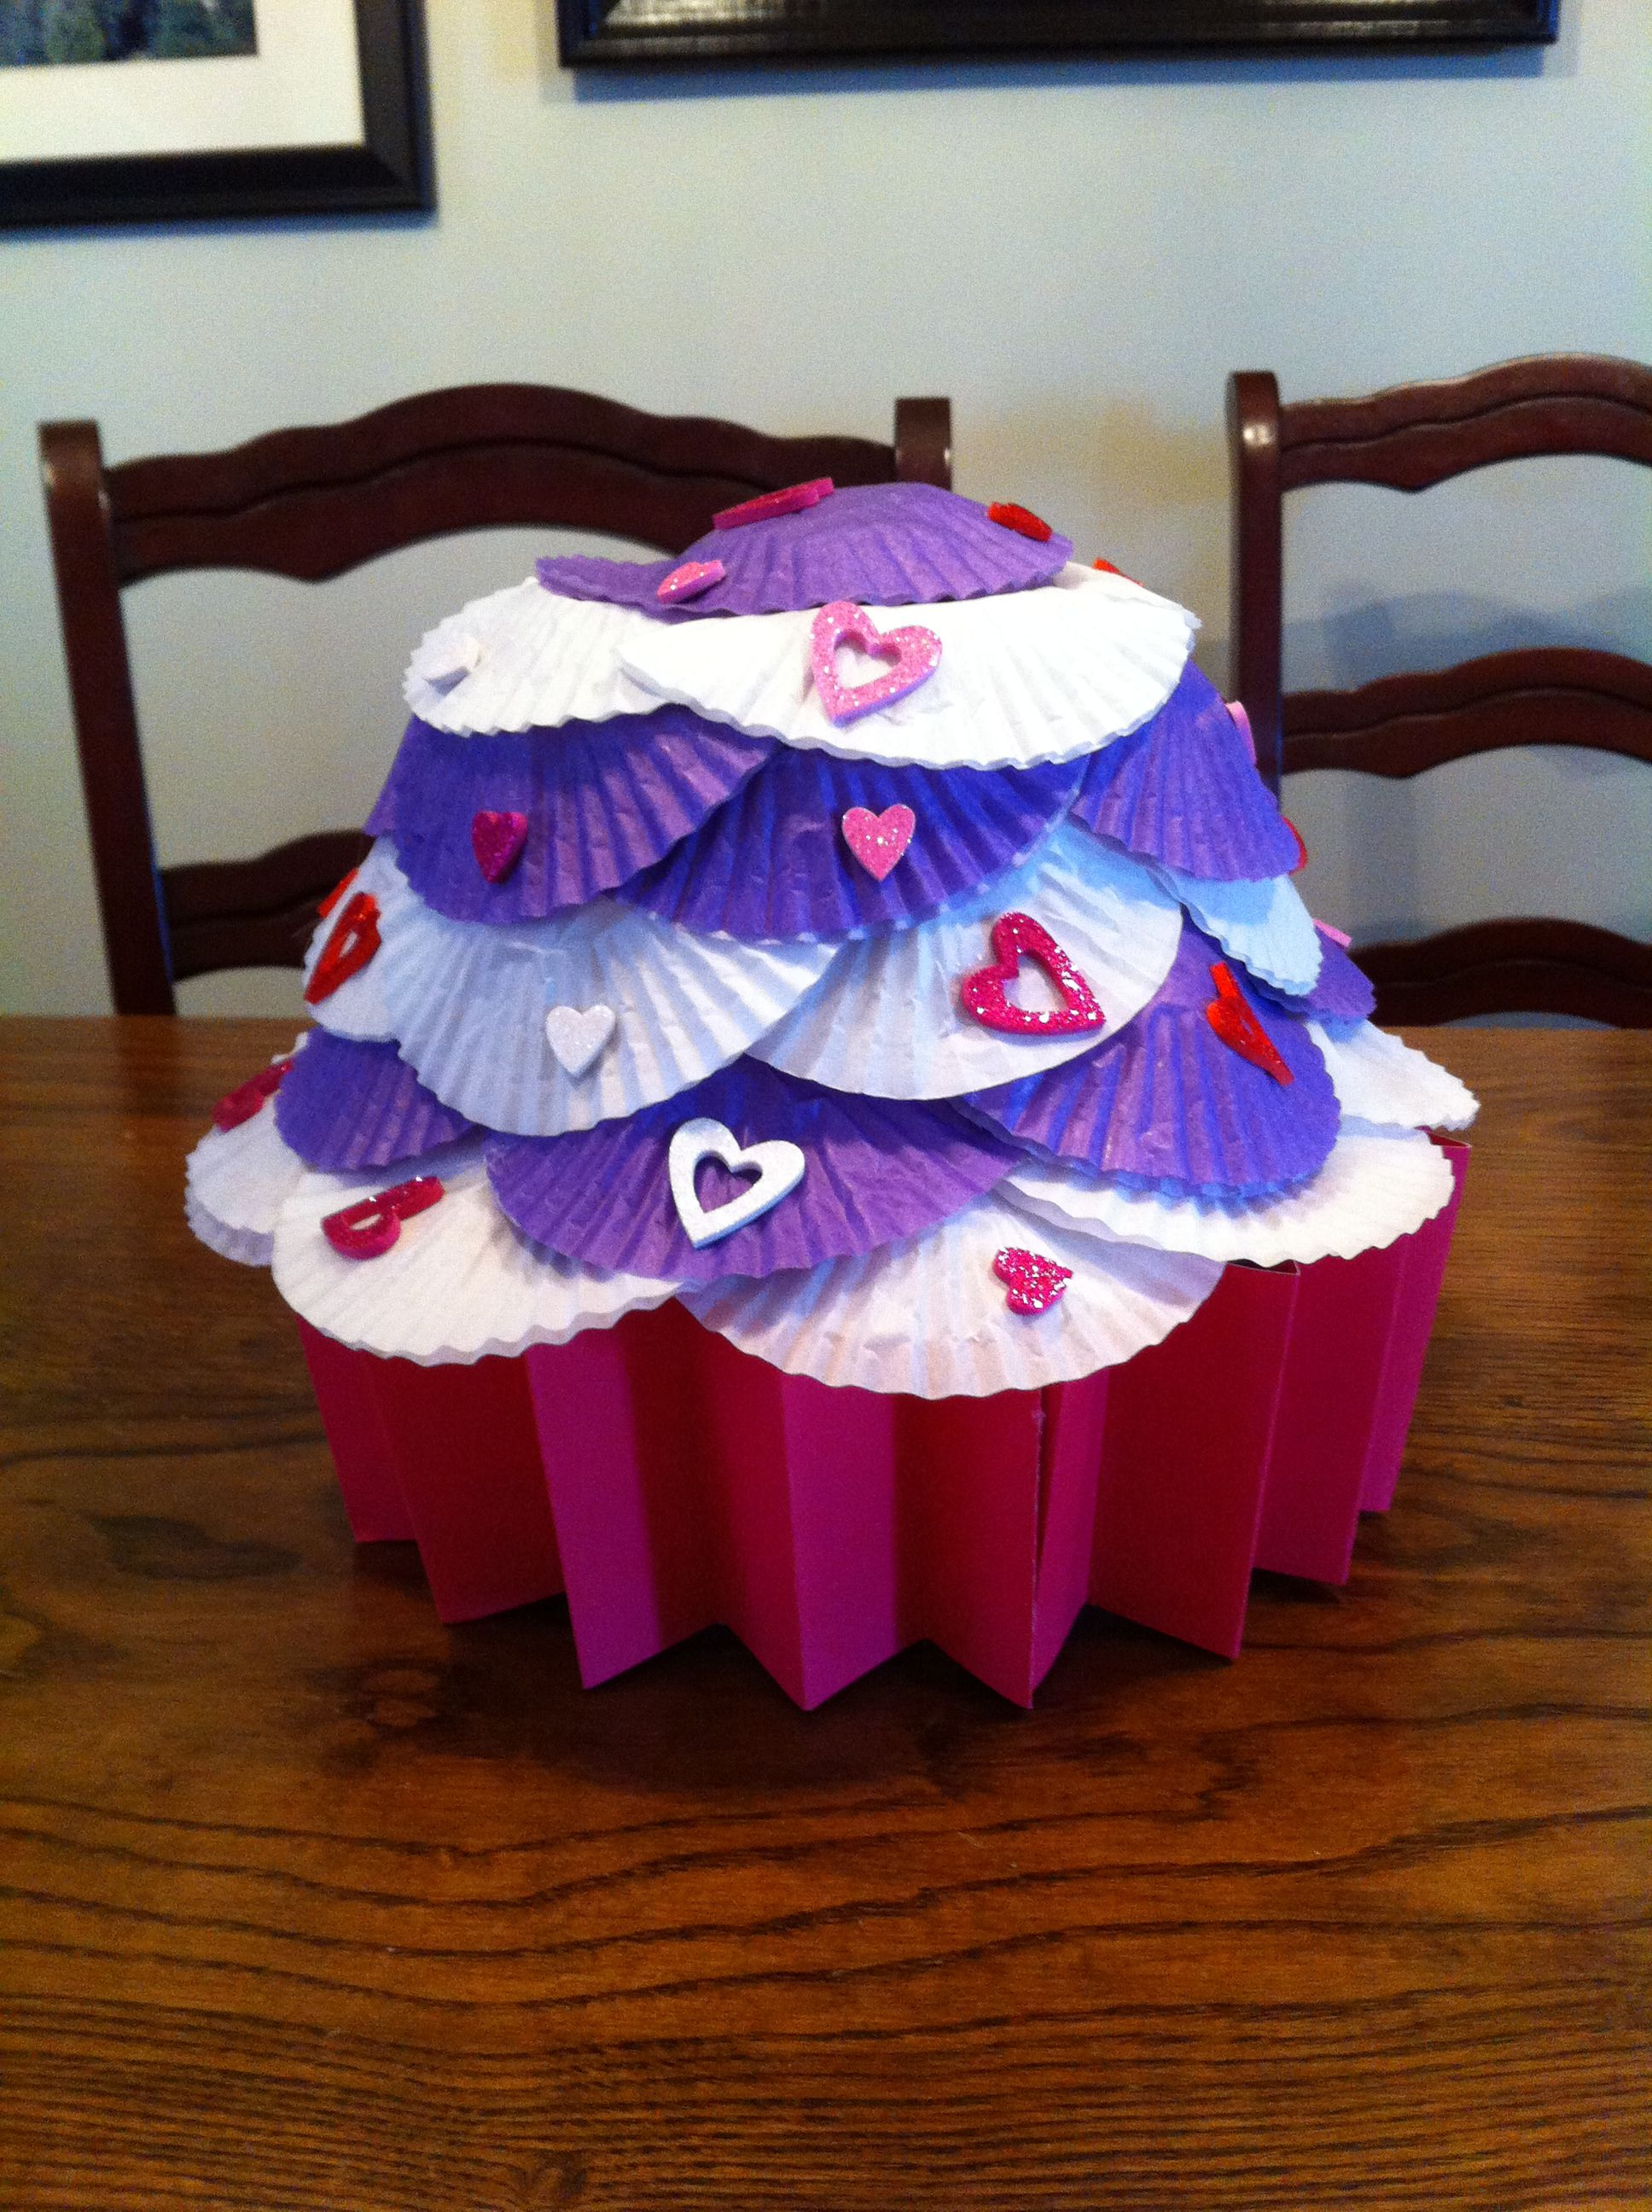 cupcake valentine box made from blue bunny ice cream containerbottom cupcake - Cupcake Valentine Box